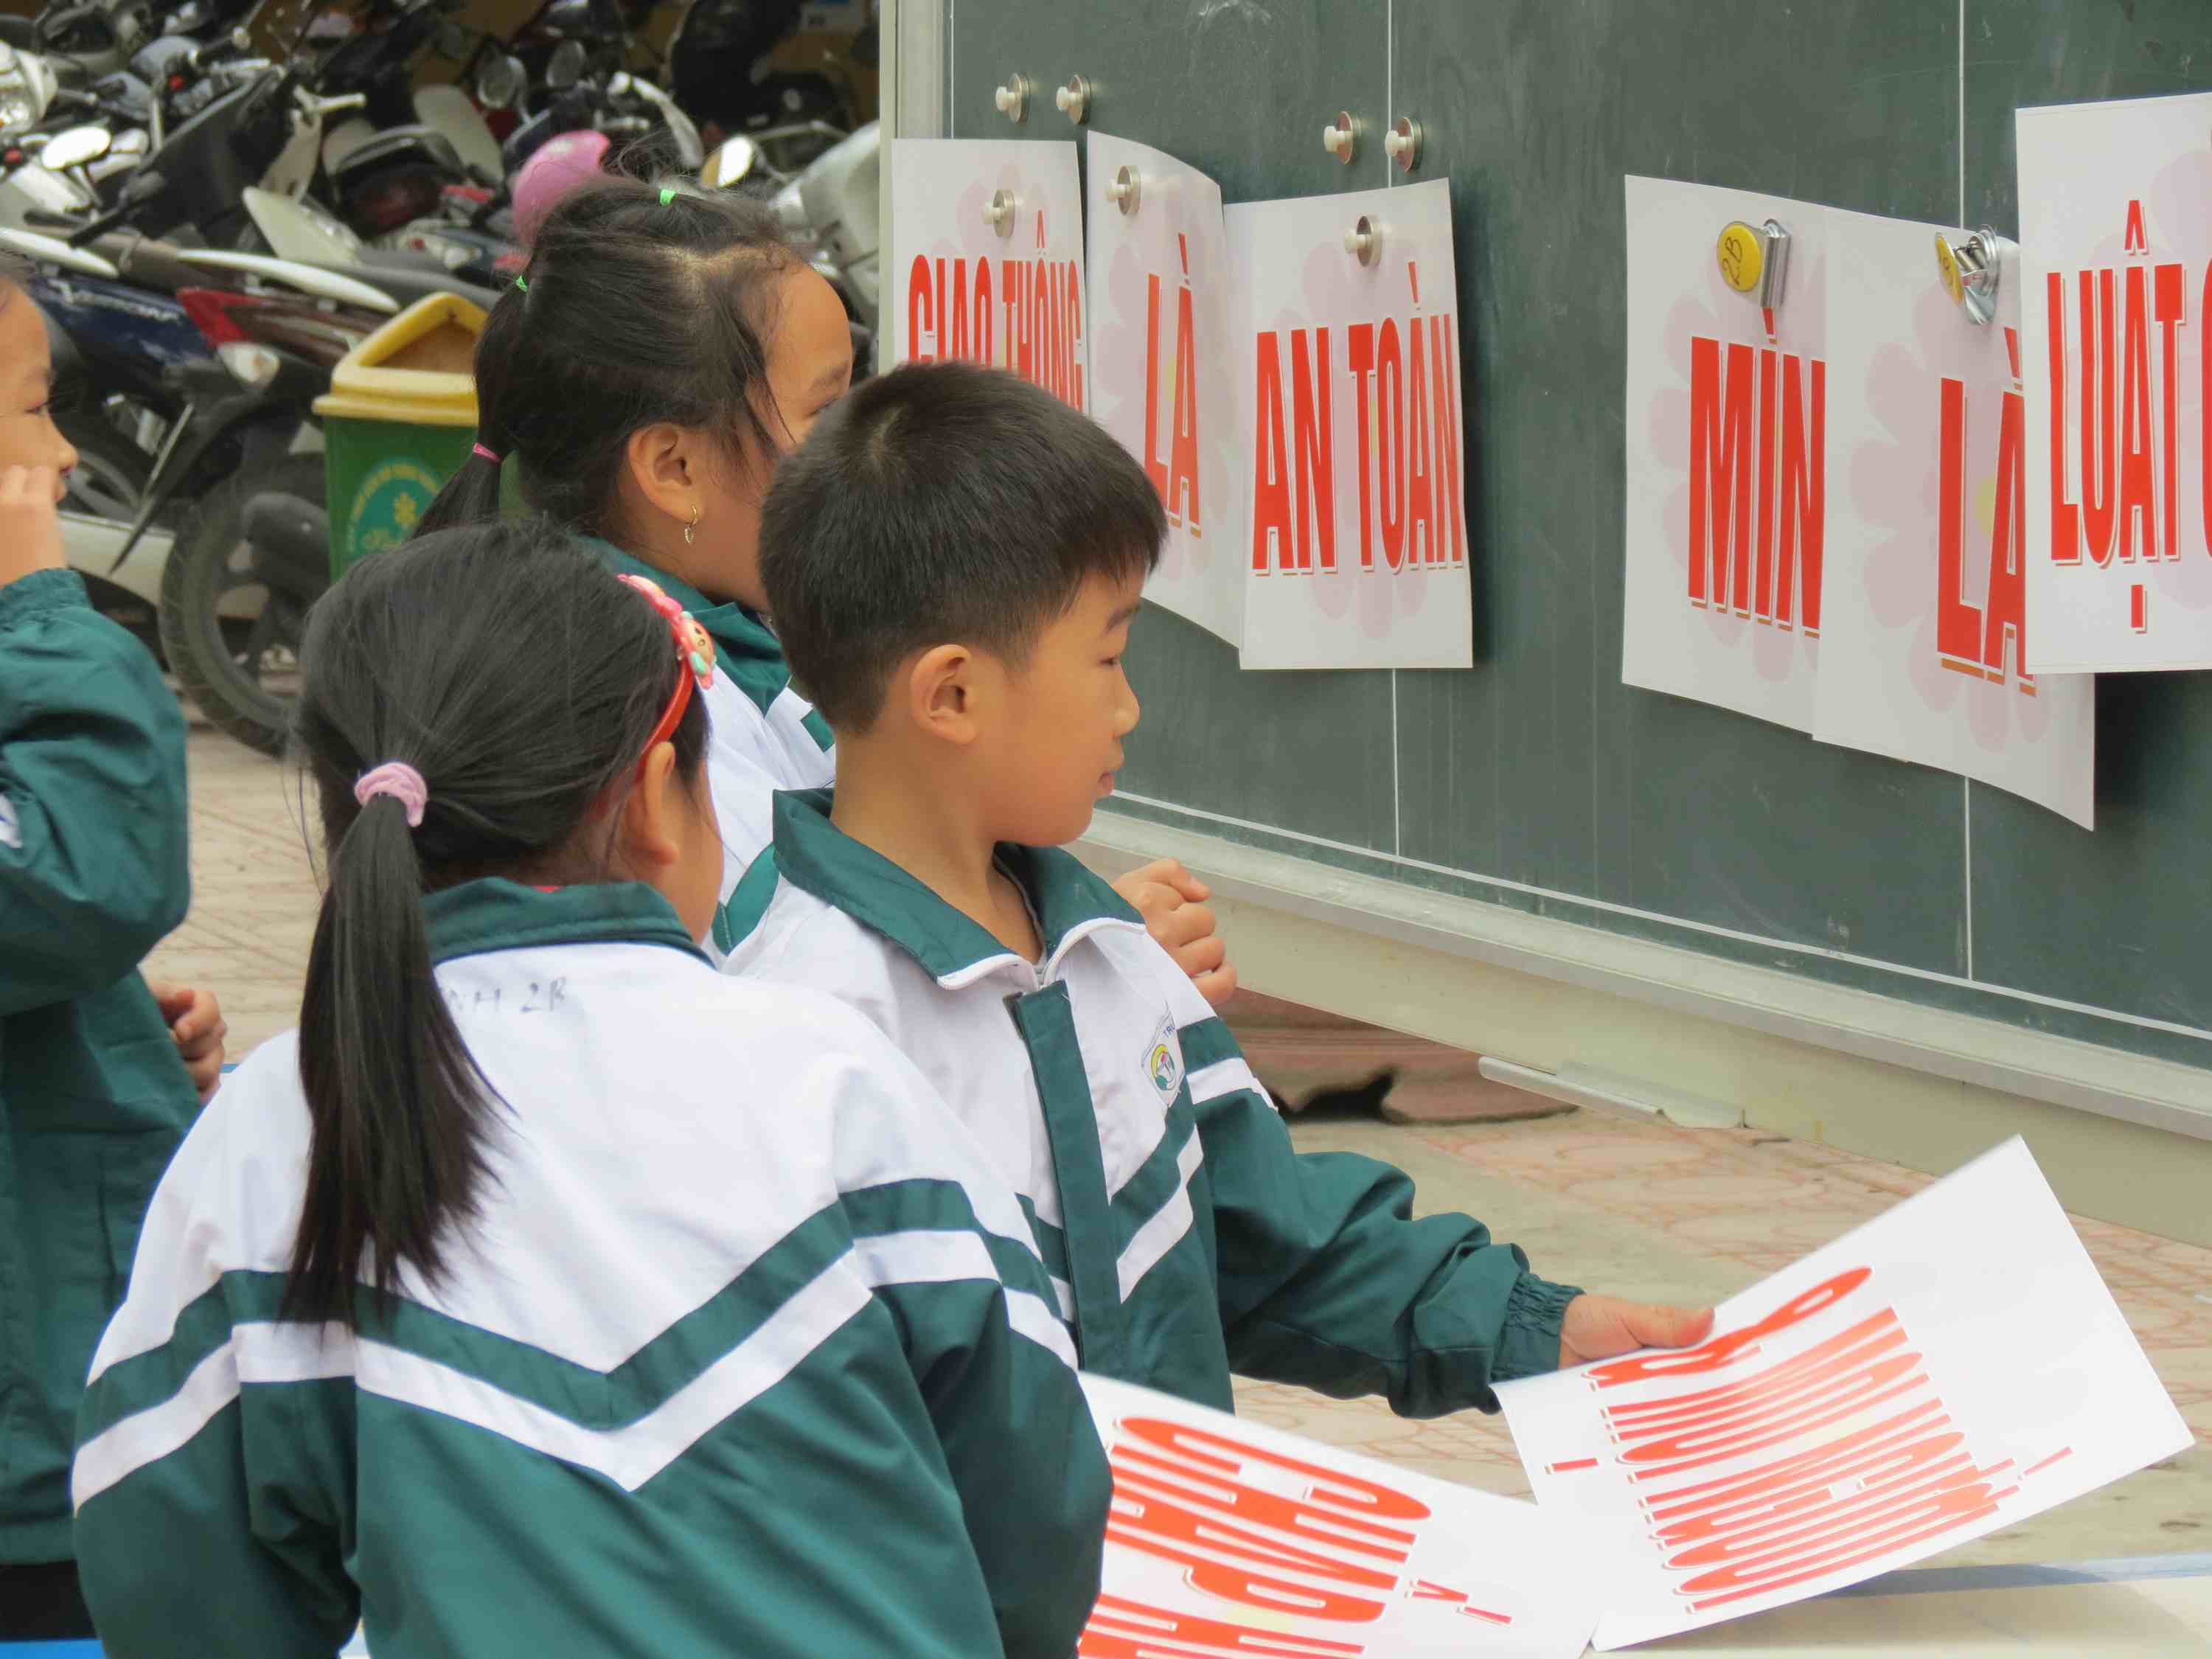 Students at Ai Quoc Primary School play a traffic safety matching game illustrating key road safety messages